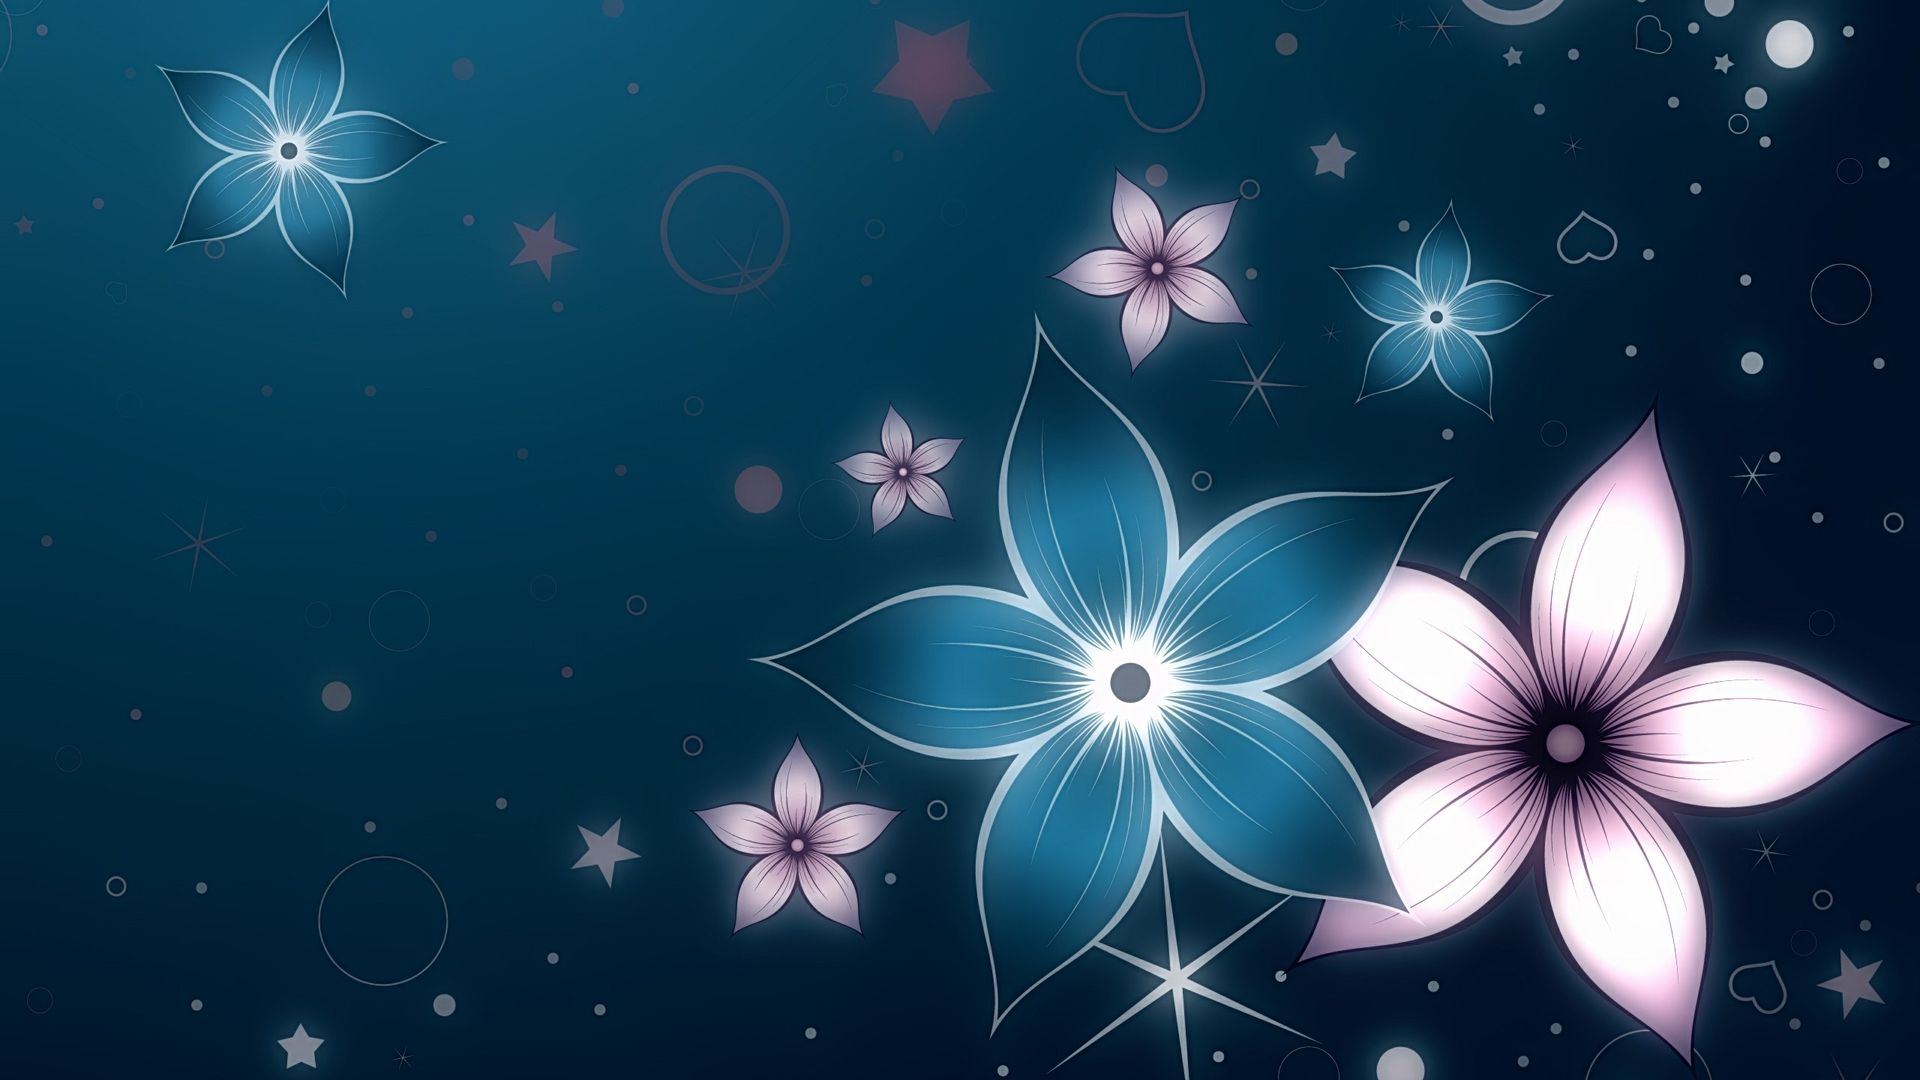 Light Blue Flower Abstract Wallpaper More information